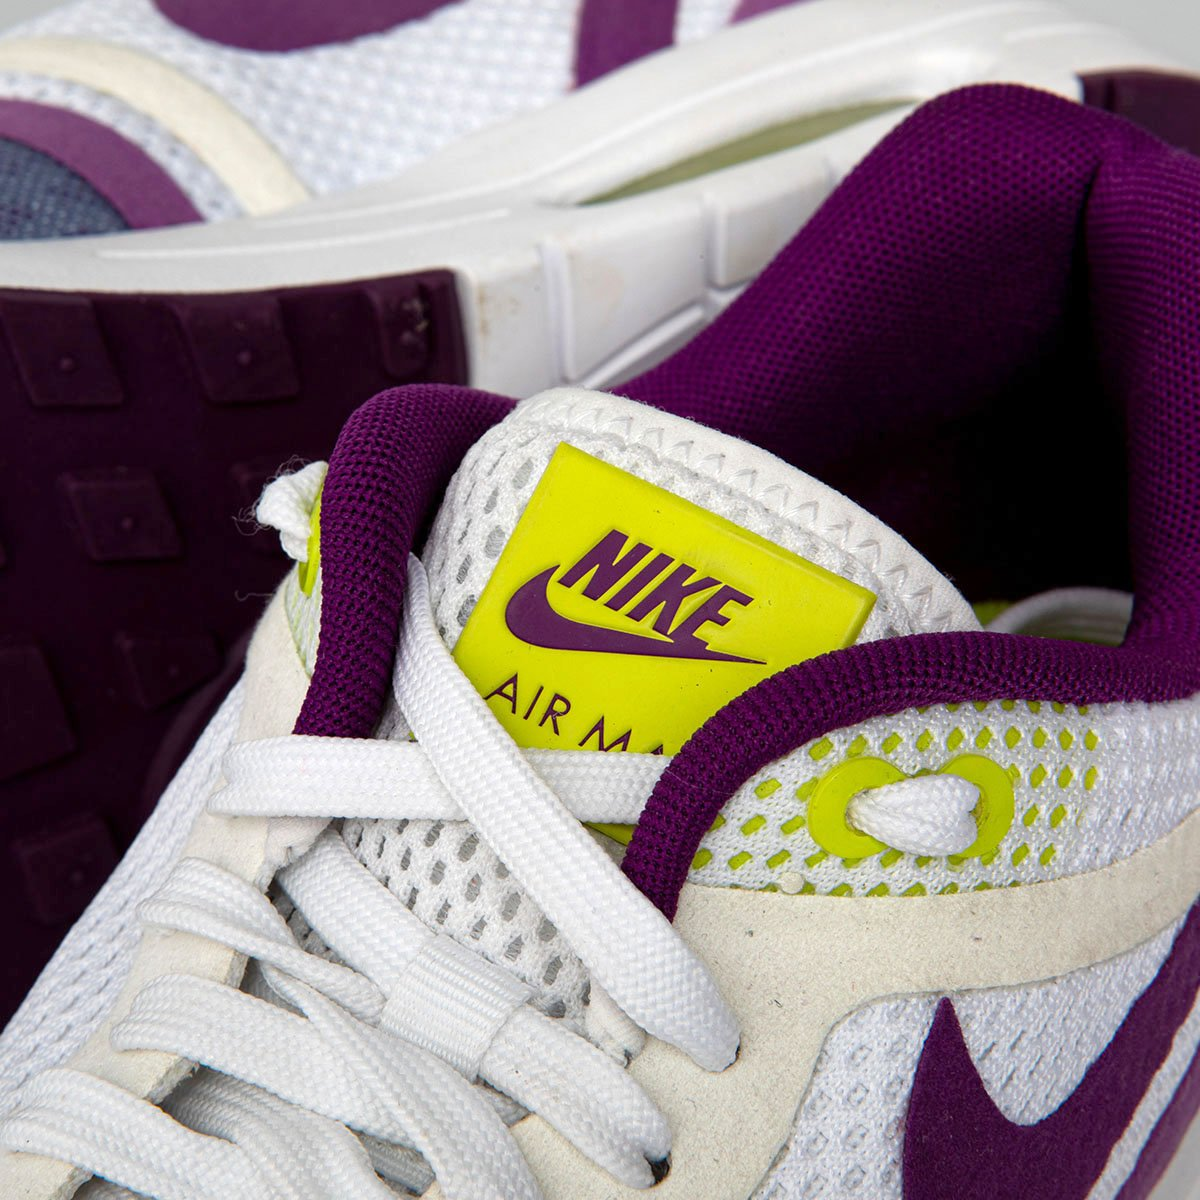 the latest b679c bee66 ... Sneakers Nike WMNS Air Max 1 desert   black-green glow-white (319986 ...